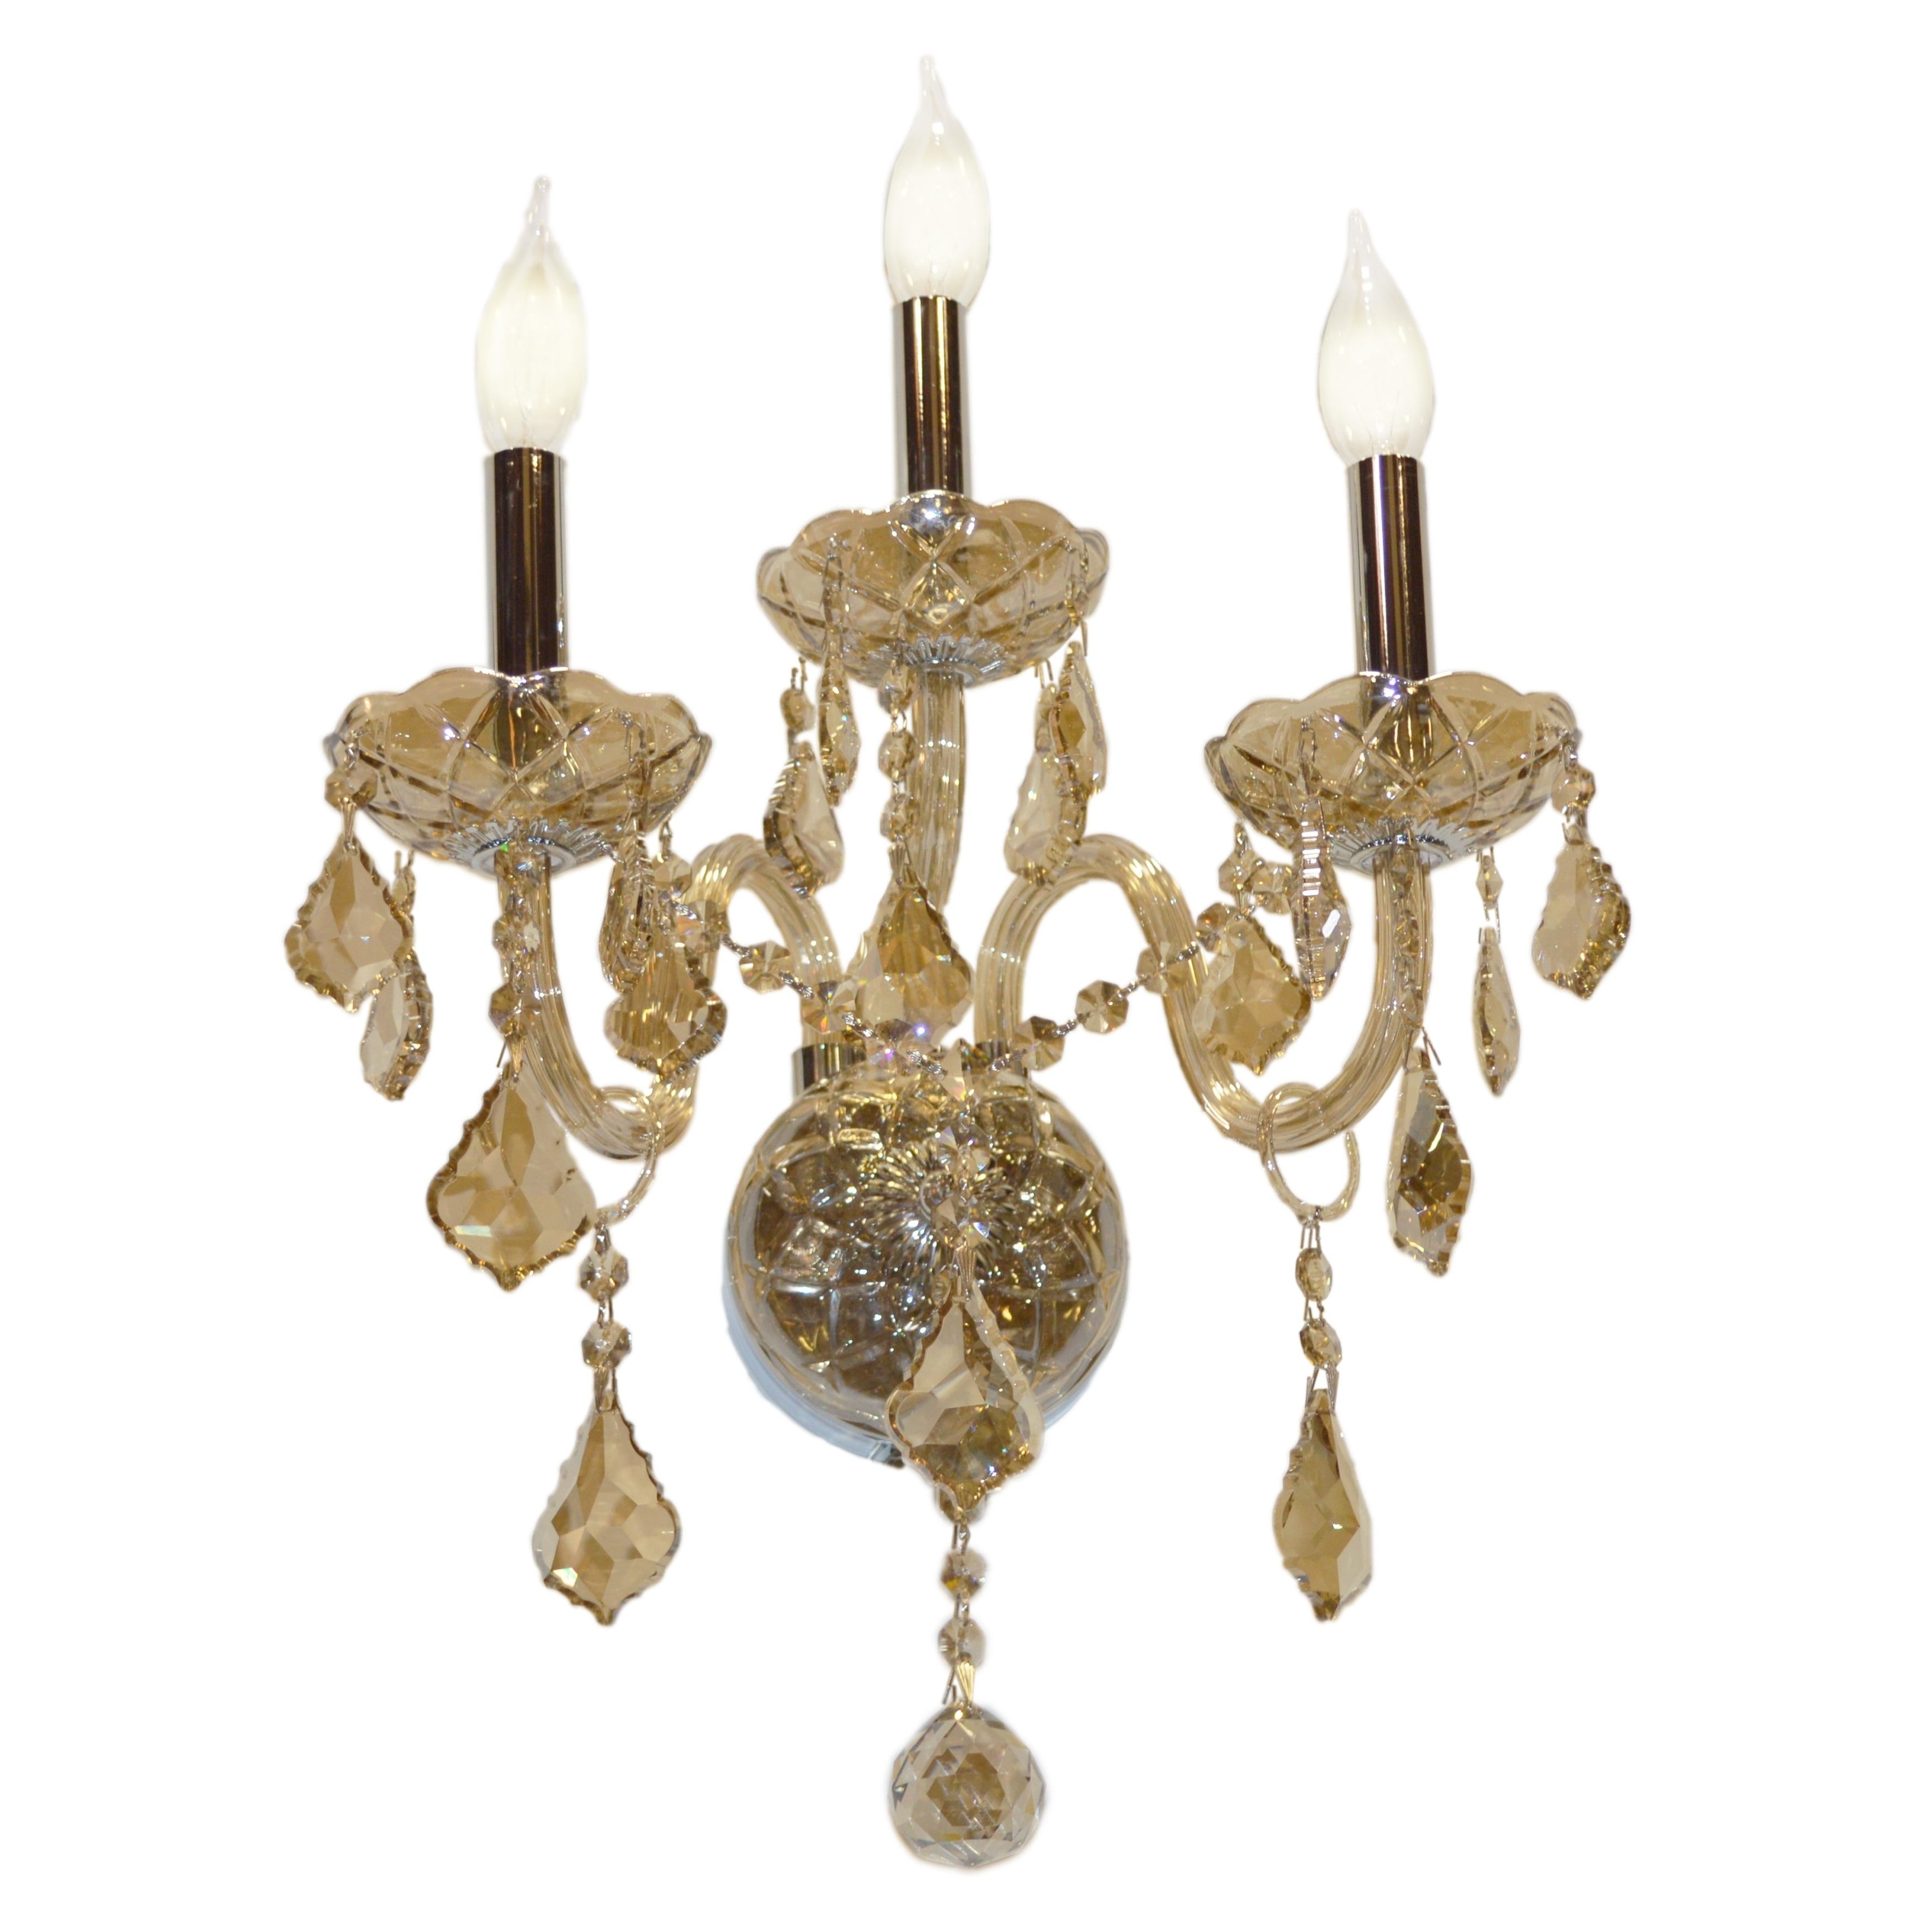 Image of: Shop Black Friday Deals On Venetian Italian Style 3 Light 13 Inch Golden Teak Crystal Candle Wall Sconce Medium Wall Sconce On Sale Overstock 10112682